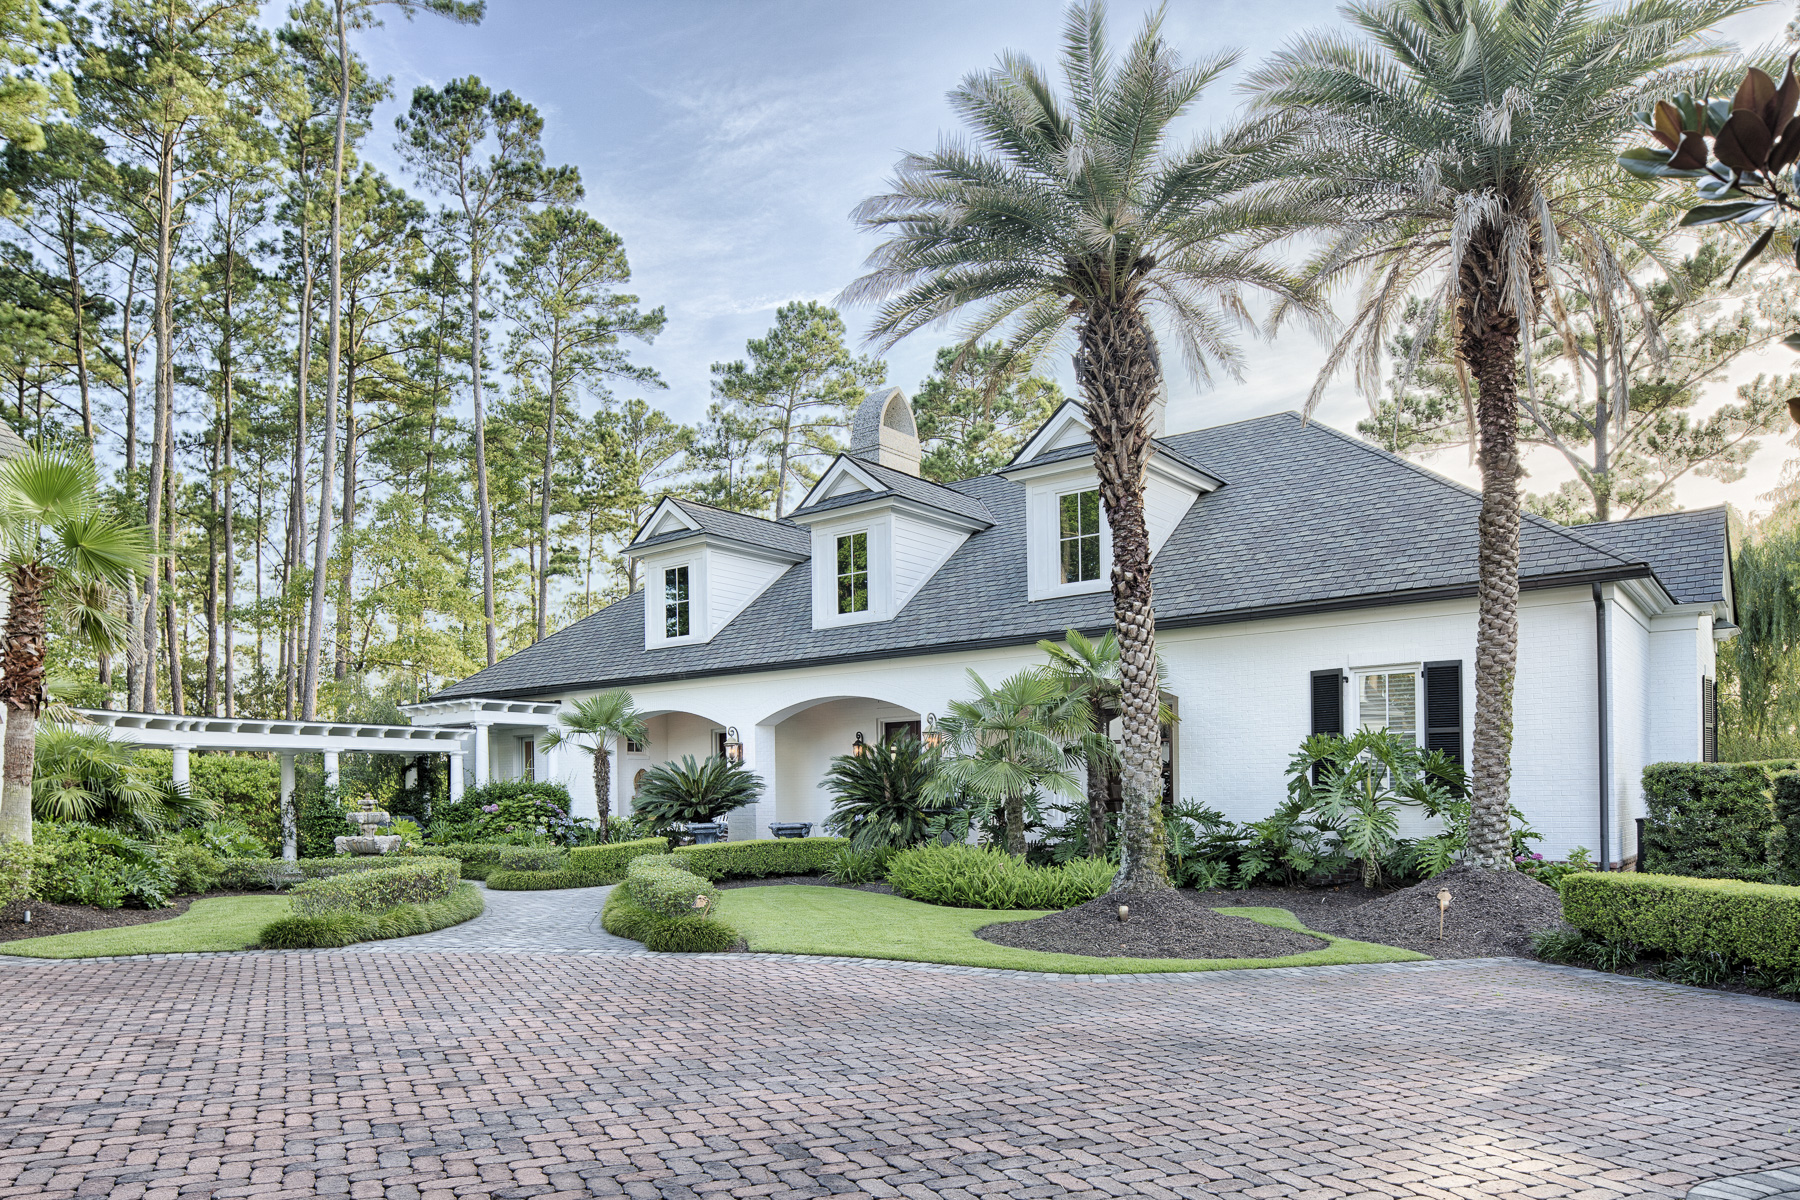 Single Family Home for Sale at 7 York Circle Bluffton, South Carolina 29909 United States